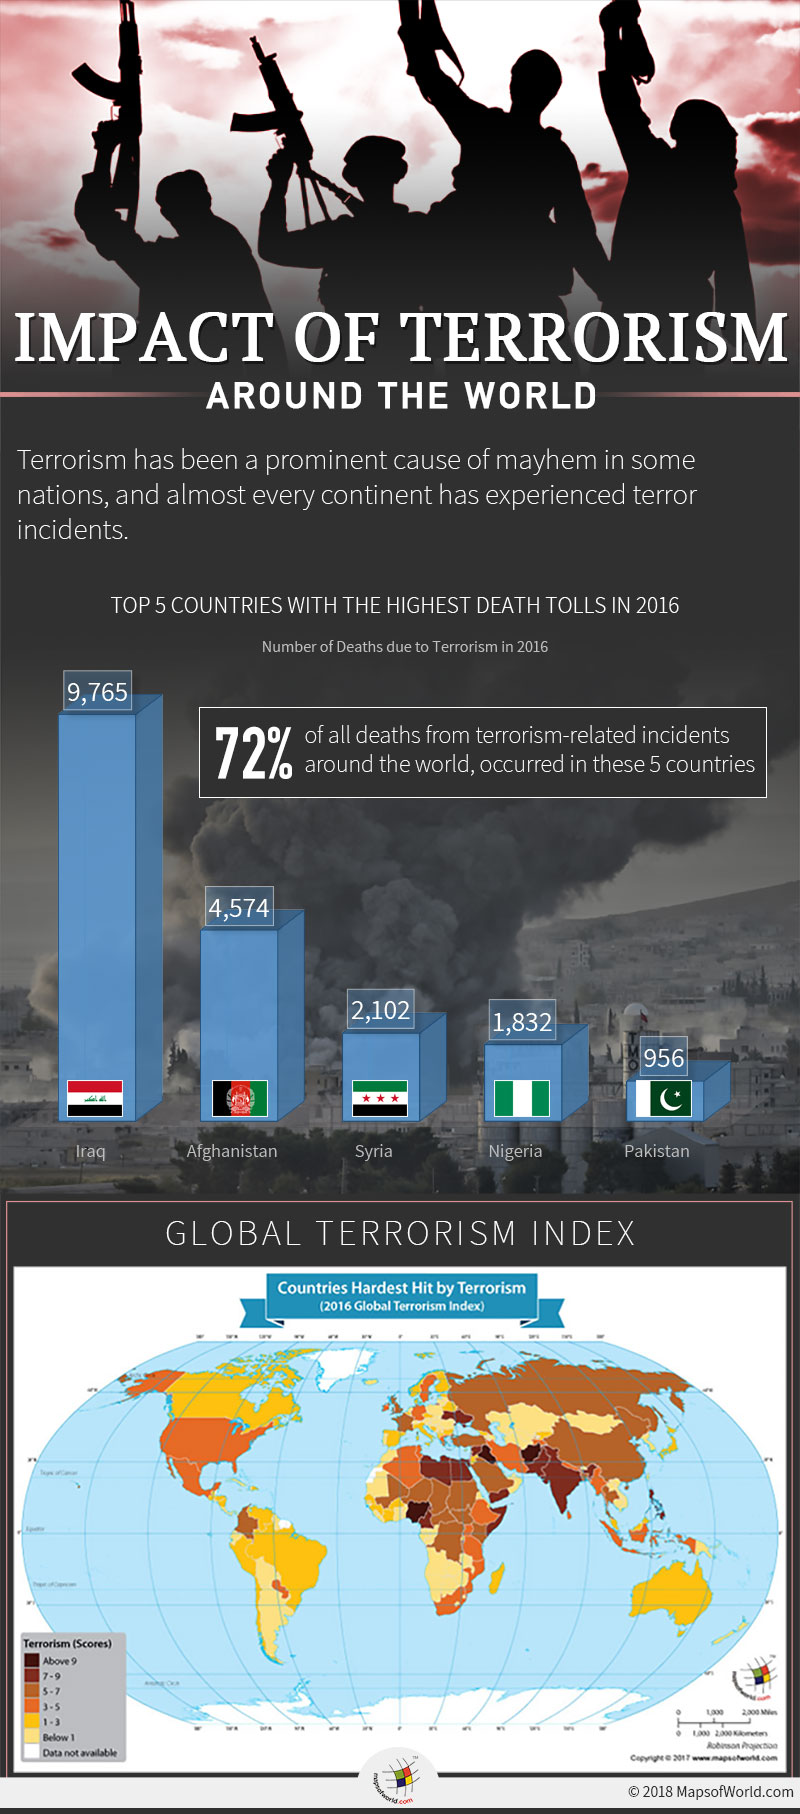 Infographic elaborating Impact of Terrorism